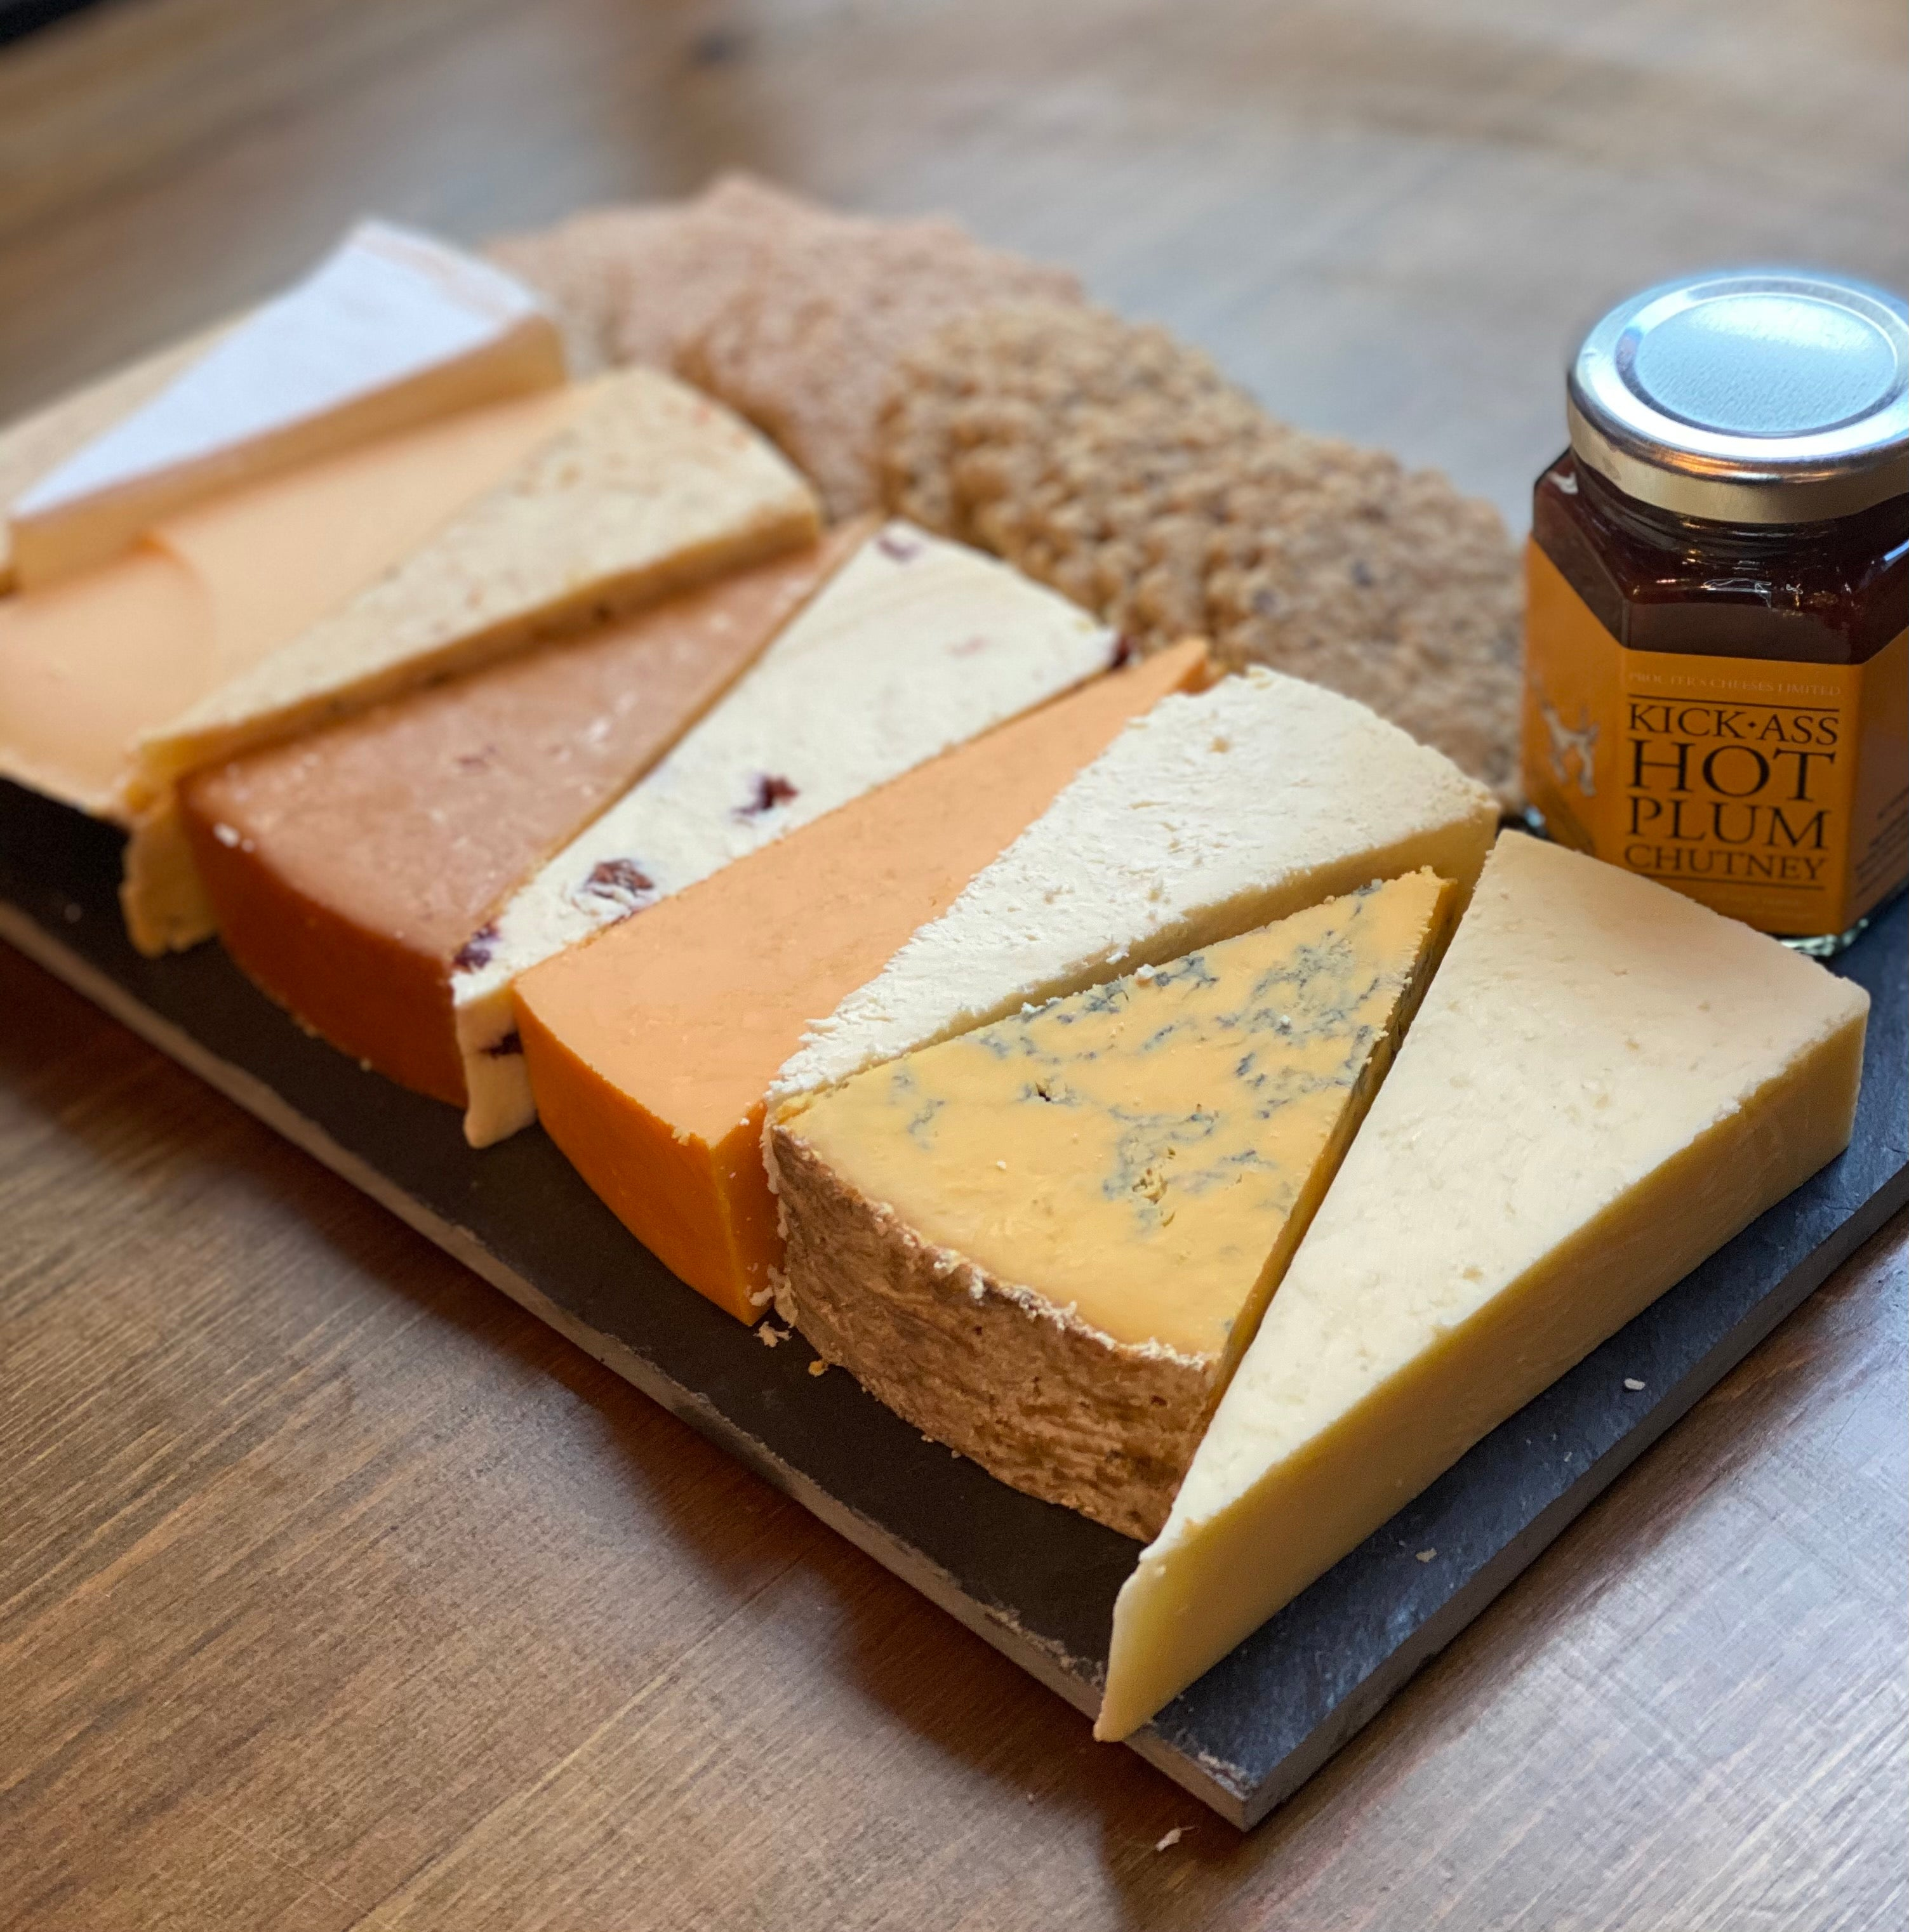 Cheese, biscuits & chutney on slate